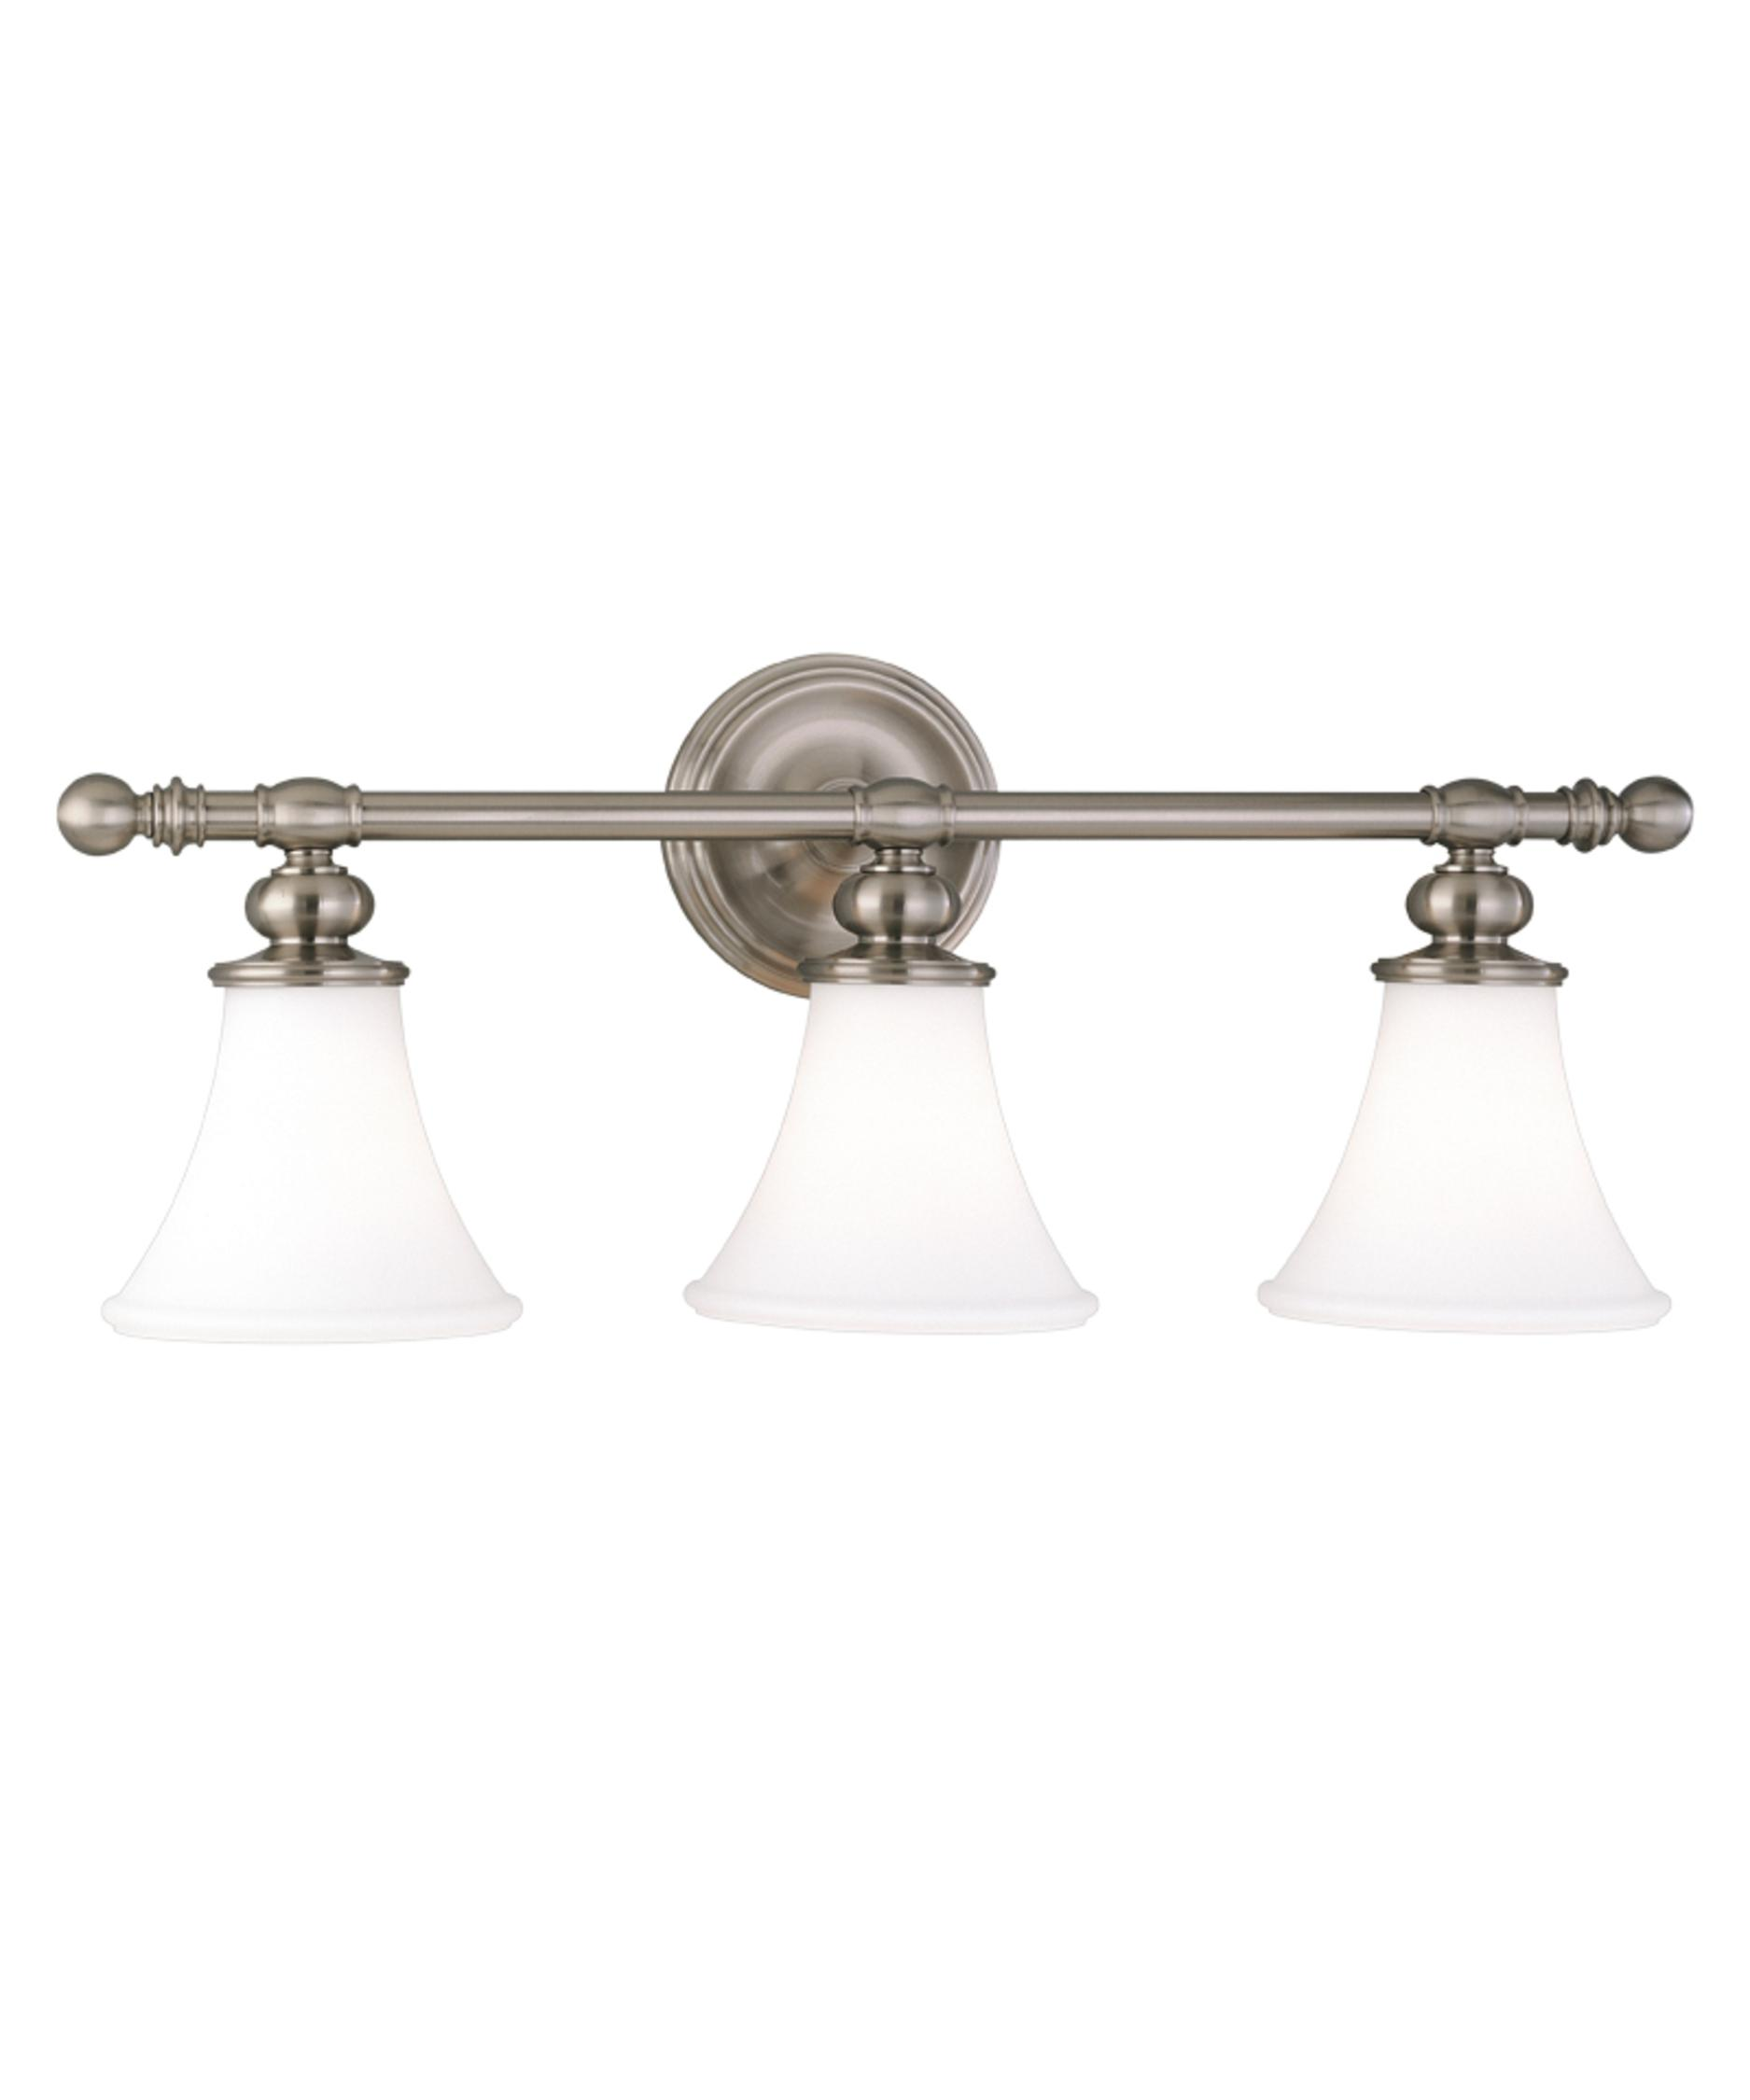 Bathroom Lighting Fixtures Polished Nickel hudson valley 4503 weston 25 inch wide bath vanity light | capitol